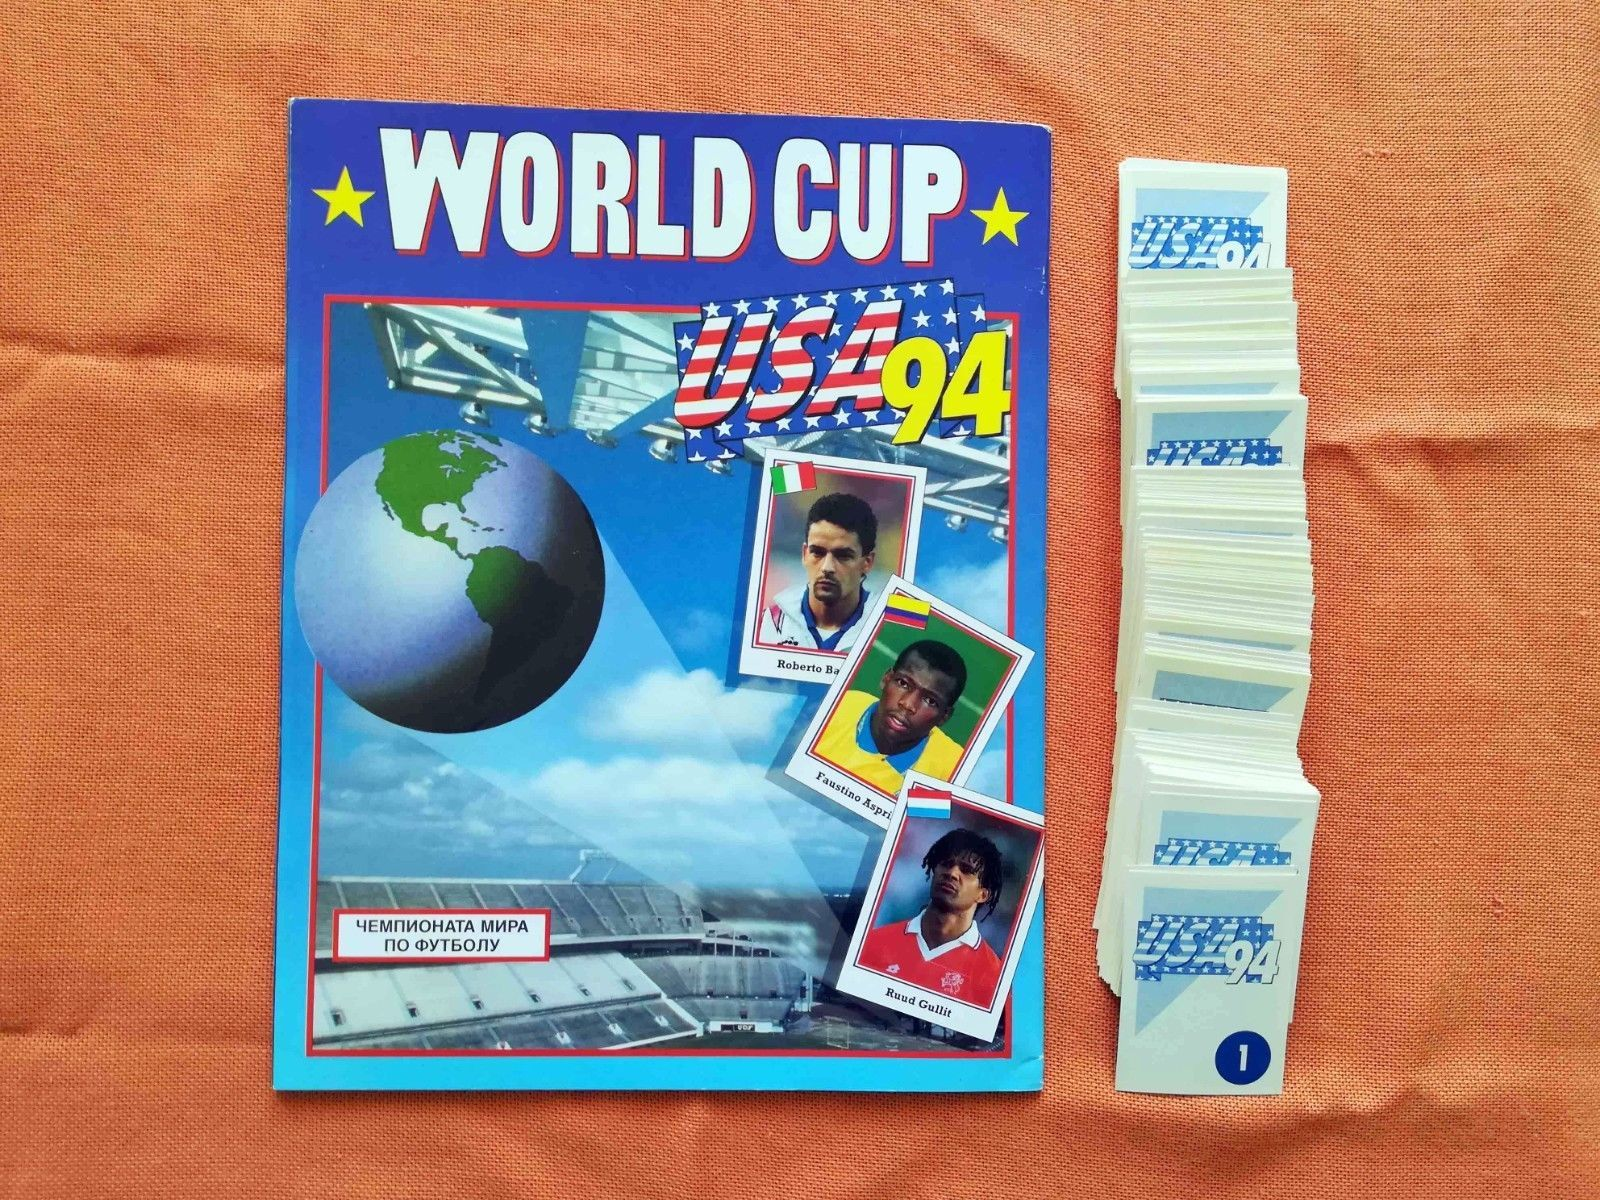 World Cup 1994 Usa 94 Fifa Album And Complete Set 1 420 Stickers Euroflash Broca Ebay World Cup Stickers Album